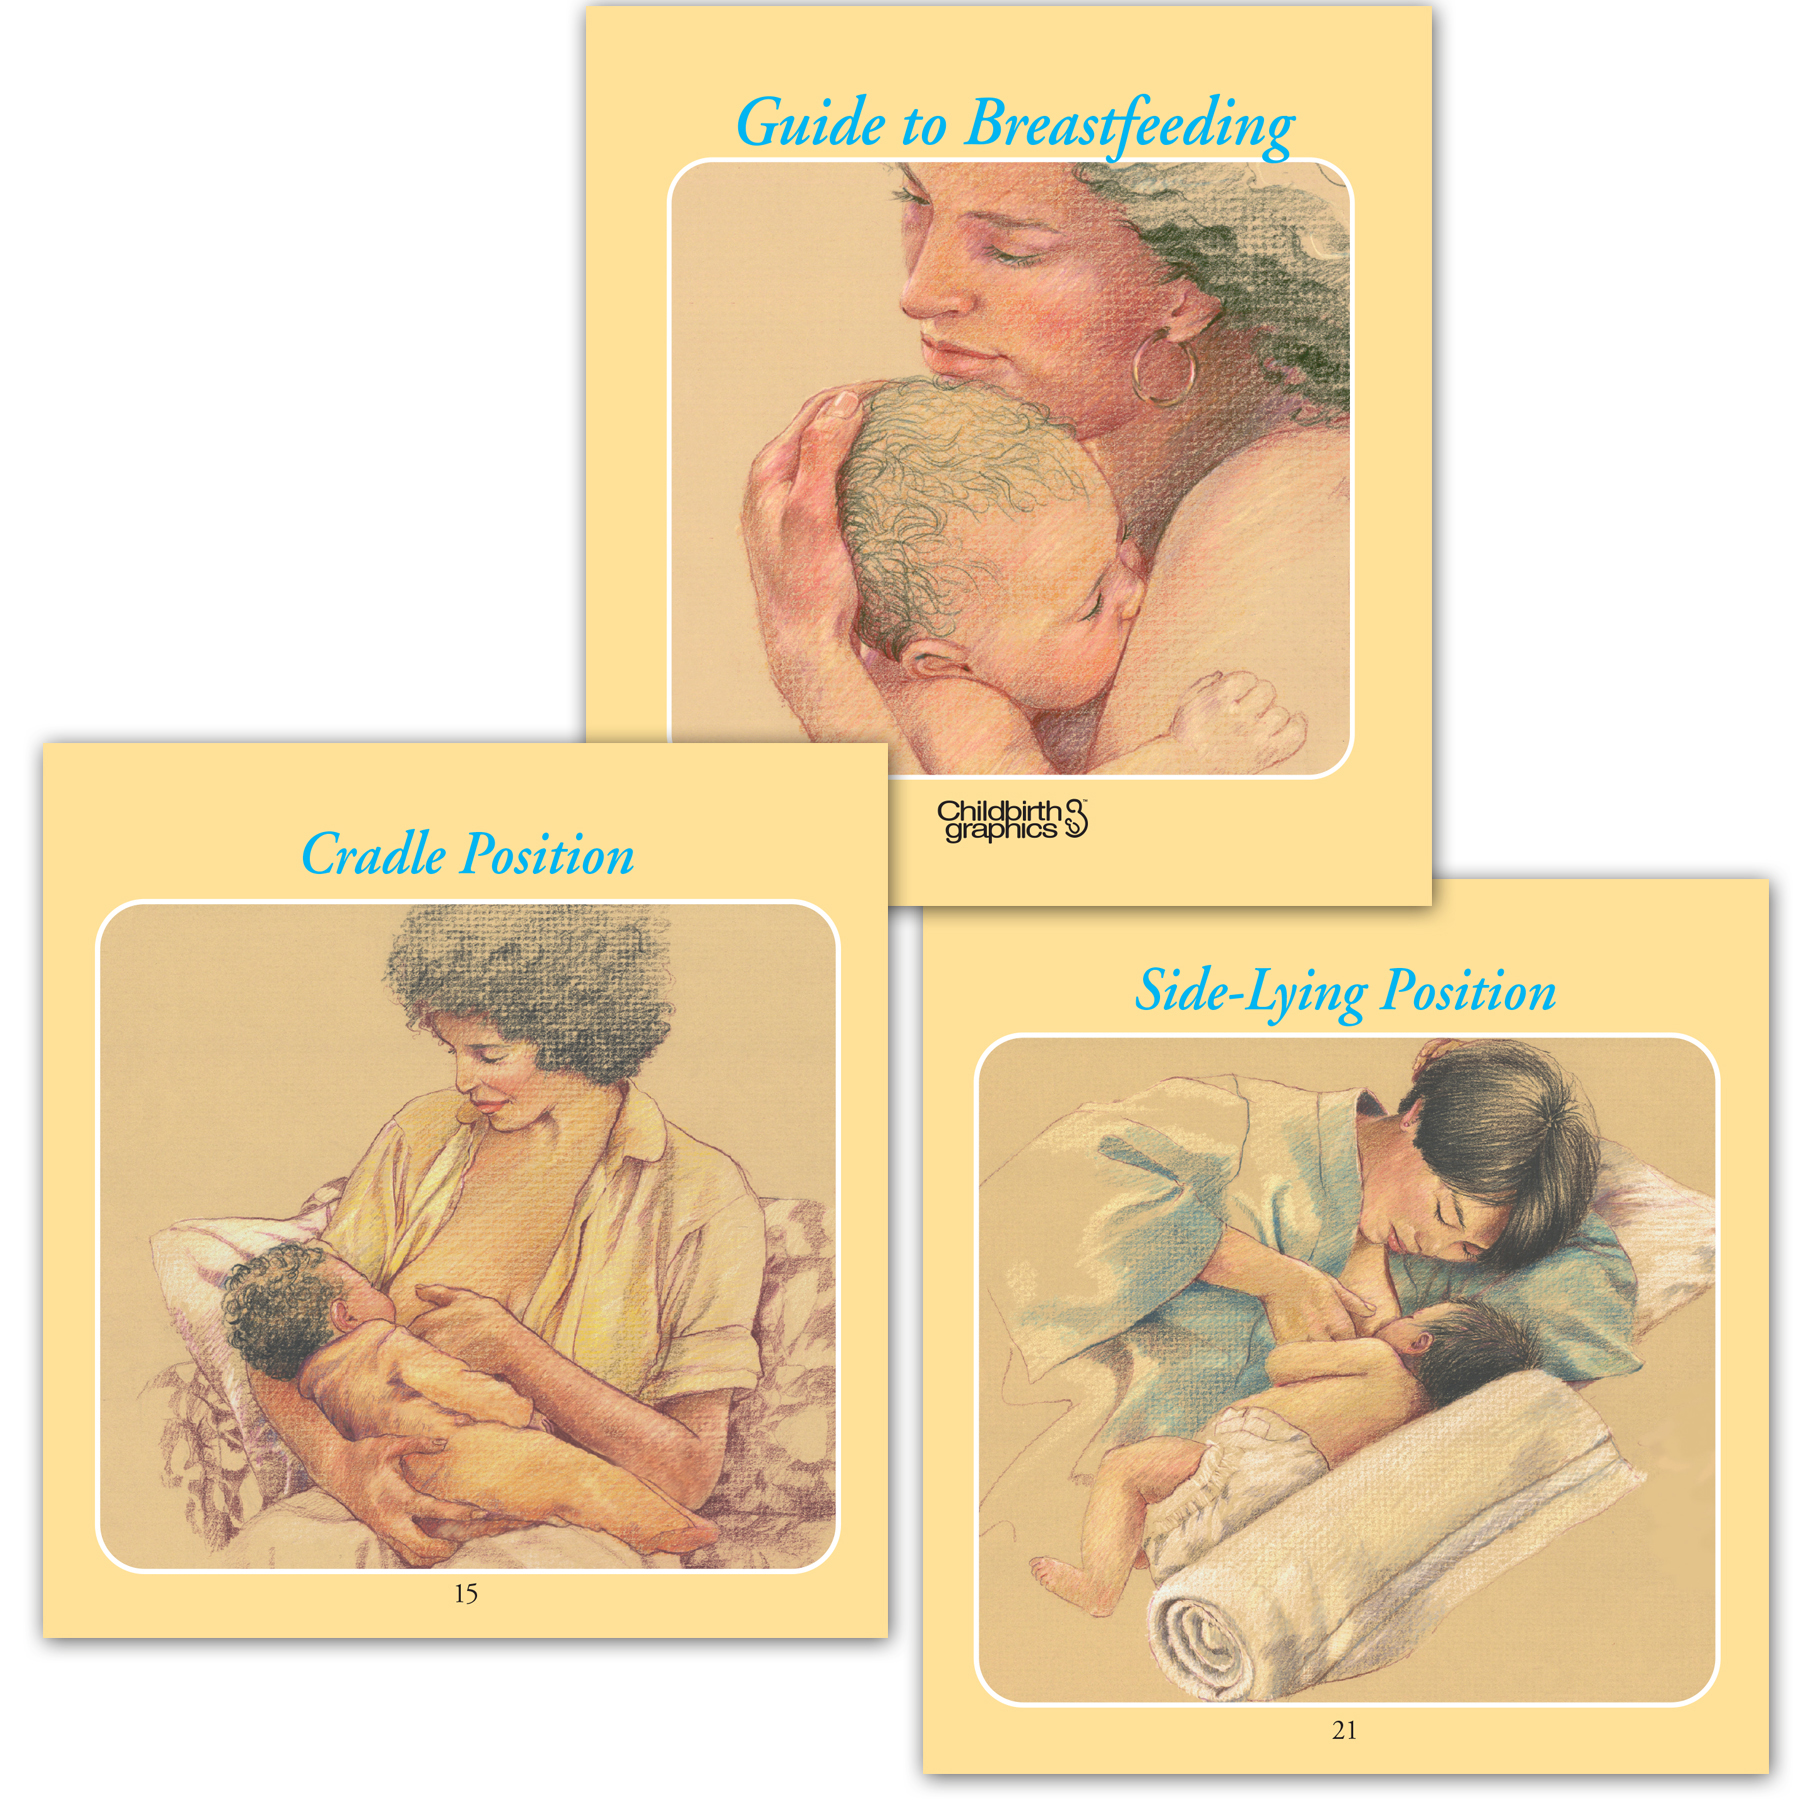 pocket-sized guide to breastfeeding chart set, image of cover and two inside panels, various breastfeeding topics discussed with presentation notes, Childbirth Graphics, 38500